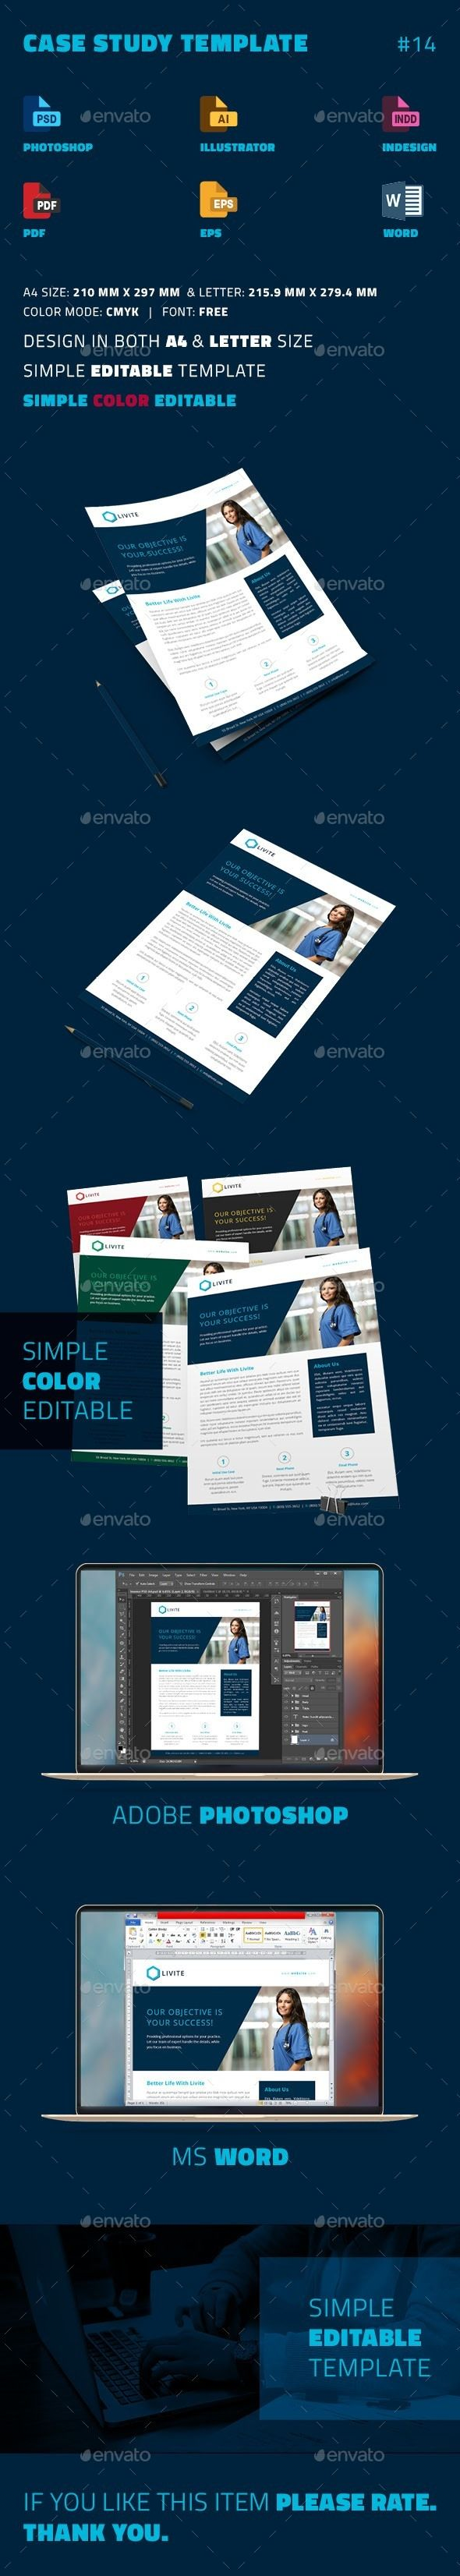 Case Study Template - Newsletters Print Templates Download here : http://graphicriver.net/item/case-study-template/16723899?s_rank=3&ref=Al-fatih